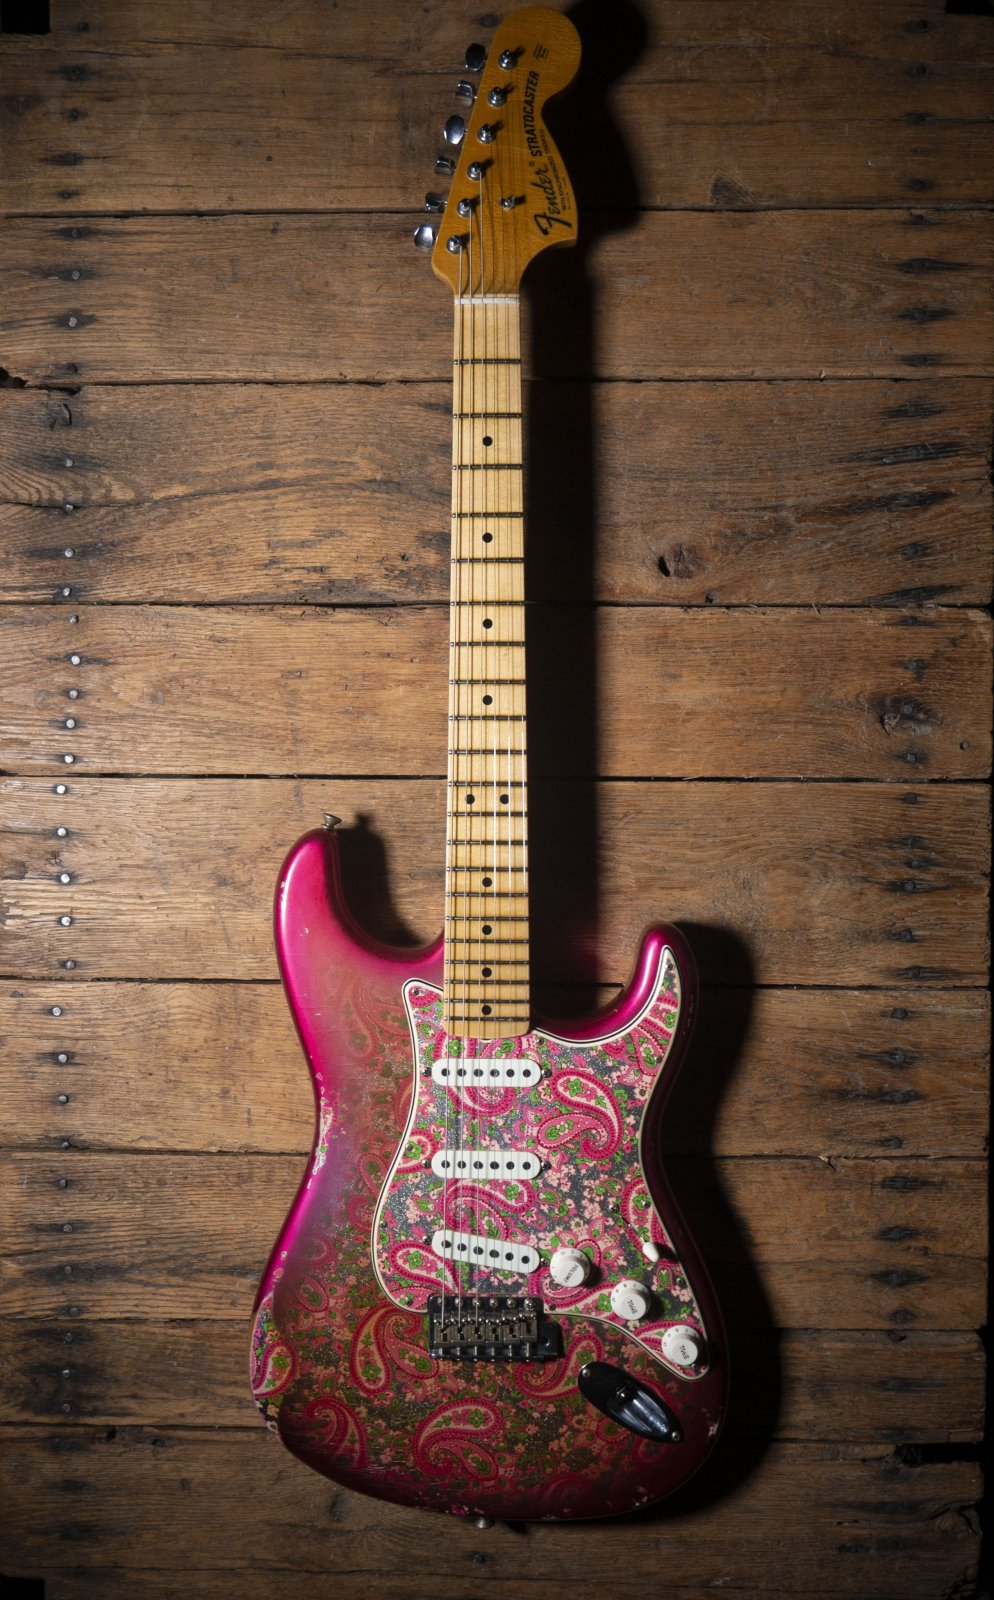 Fender Custom Shop Limited Edition '68 Stratocaster Relic Pink Paisley (Hand Selected)